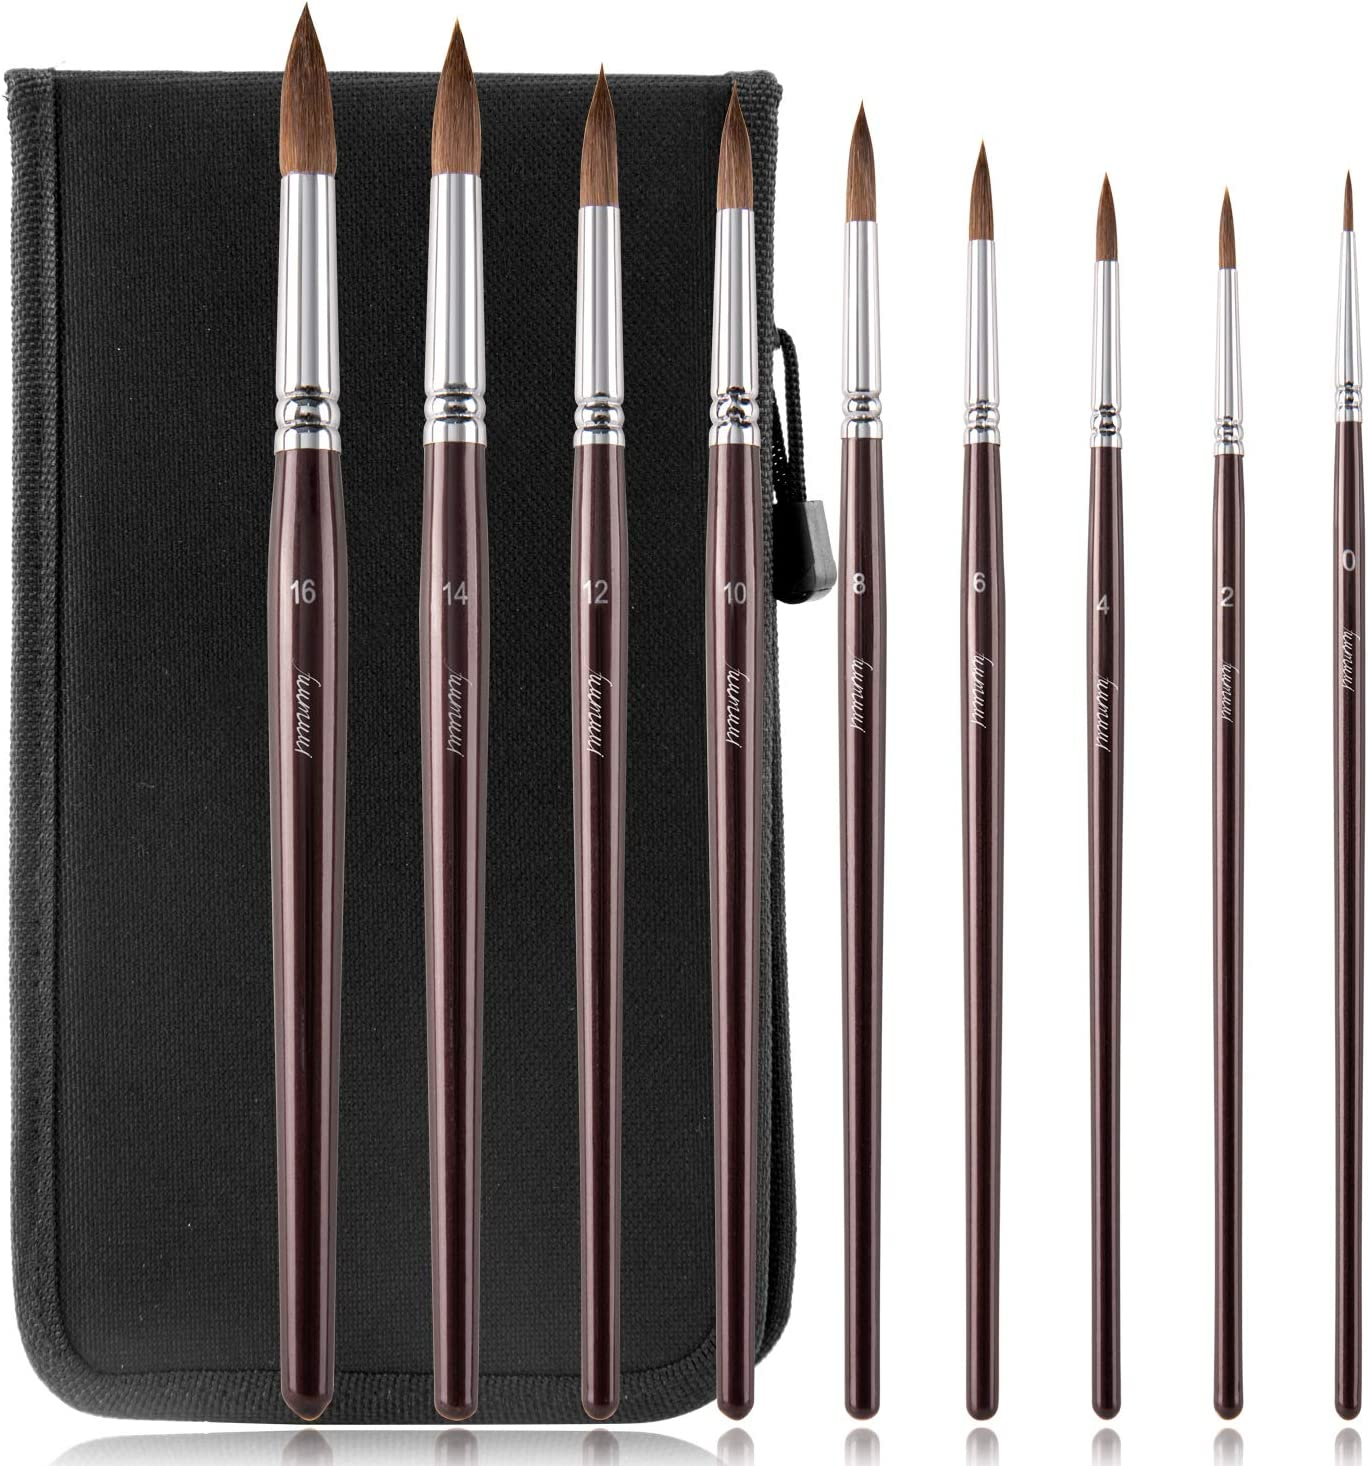 Fuumuui Sable Hair Watercolor Brushes Round Pointed Paint Brushes 9pcs Premium Sable Hair Artist Brushes for Watercolor Gouache Acrylic Ink Painting